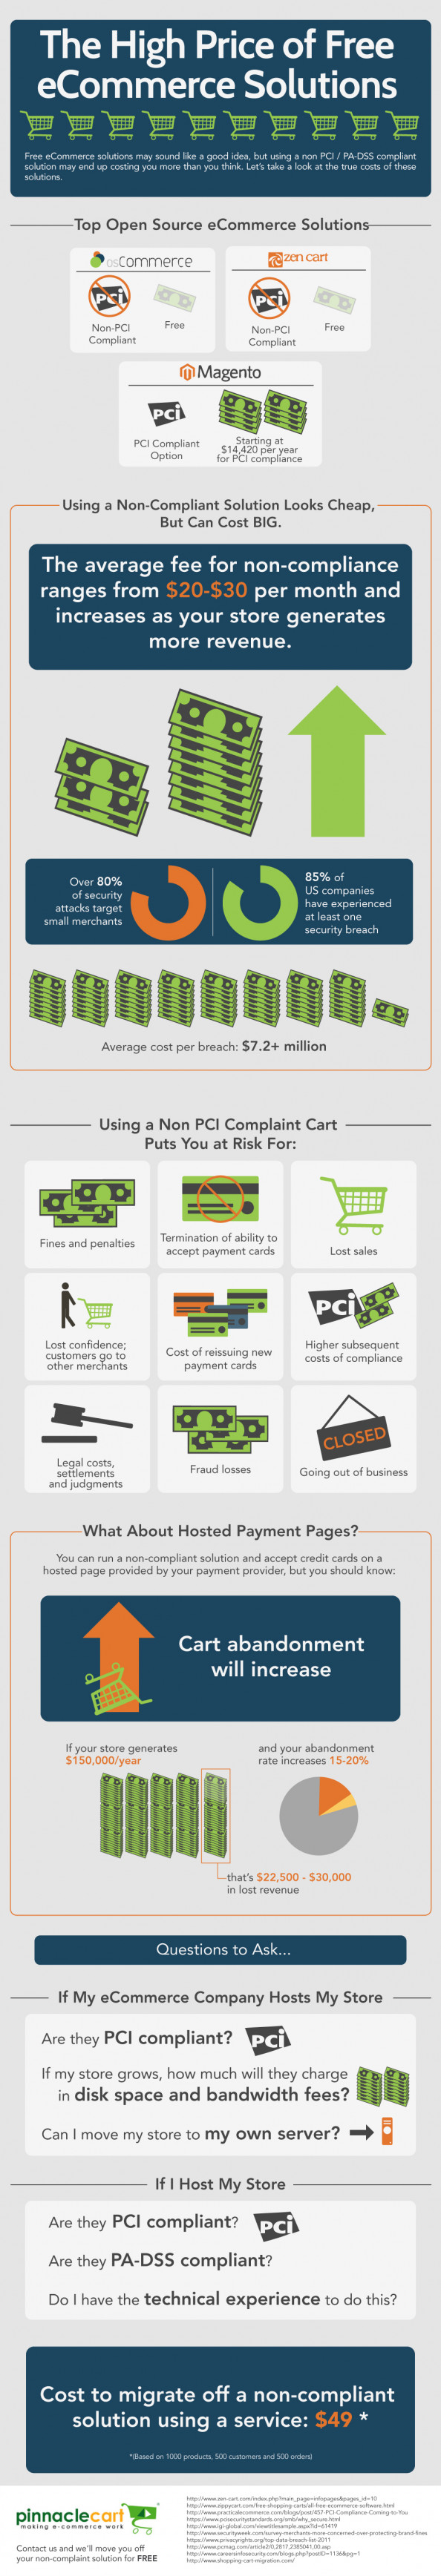 The High Price of Free eCommerce Solutions Infographic